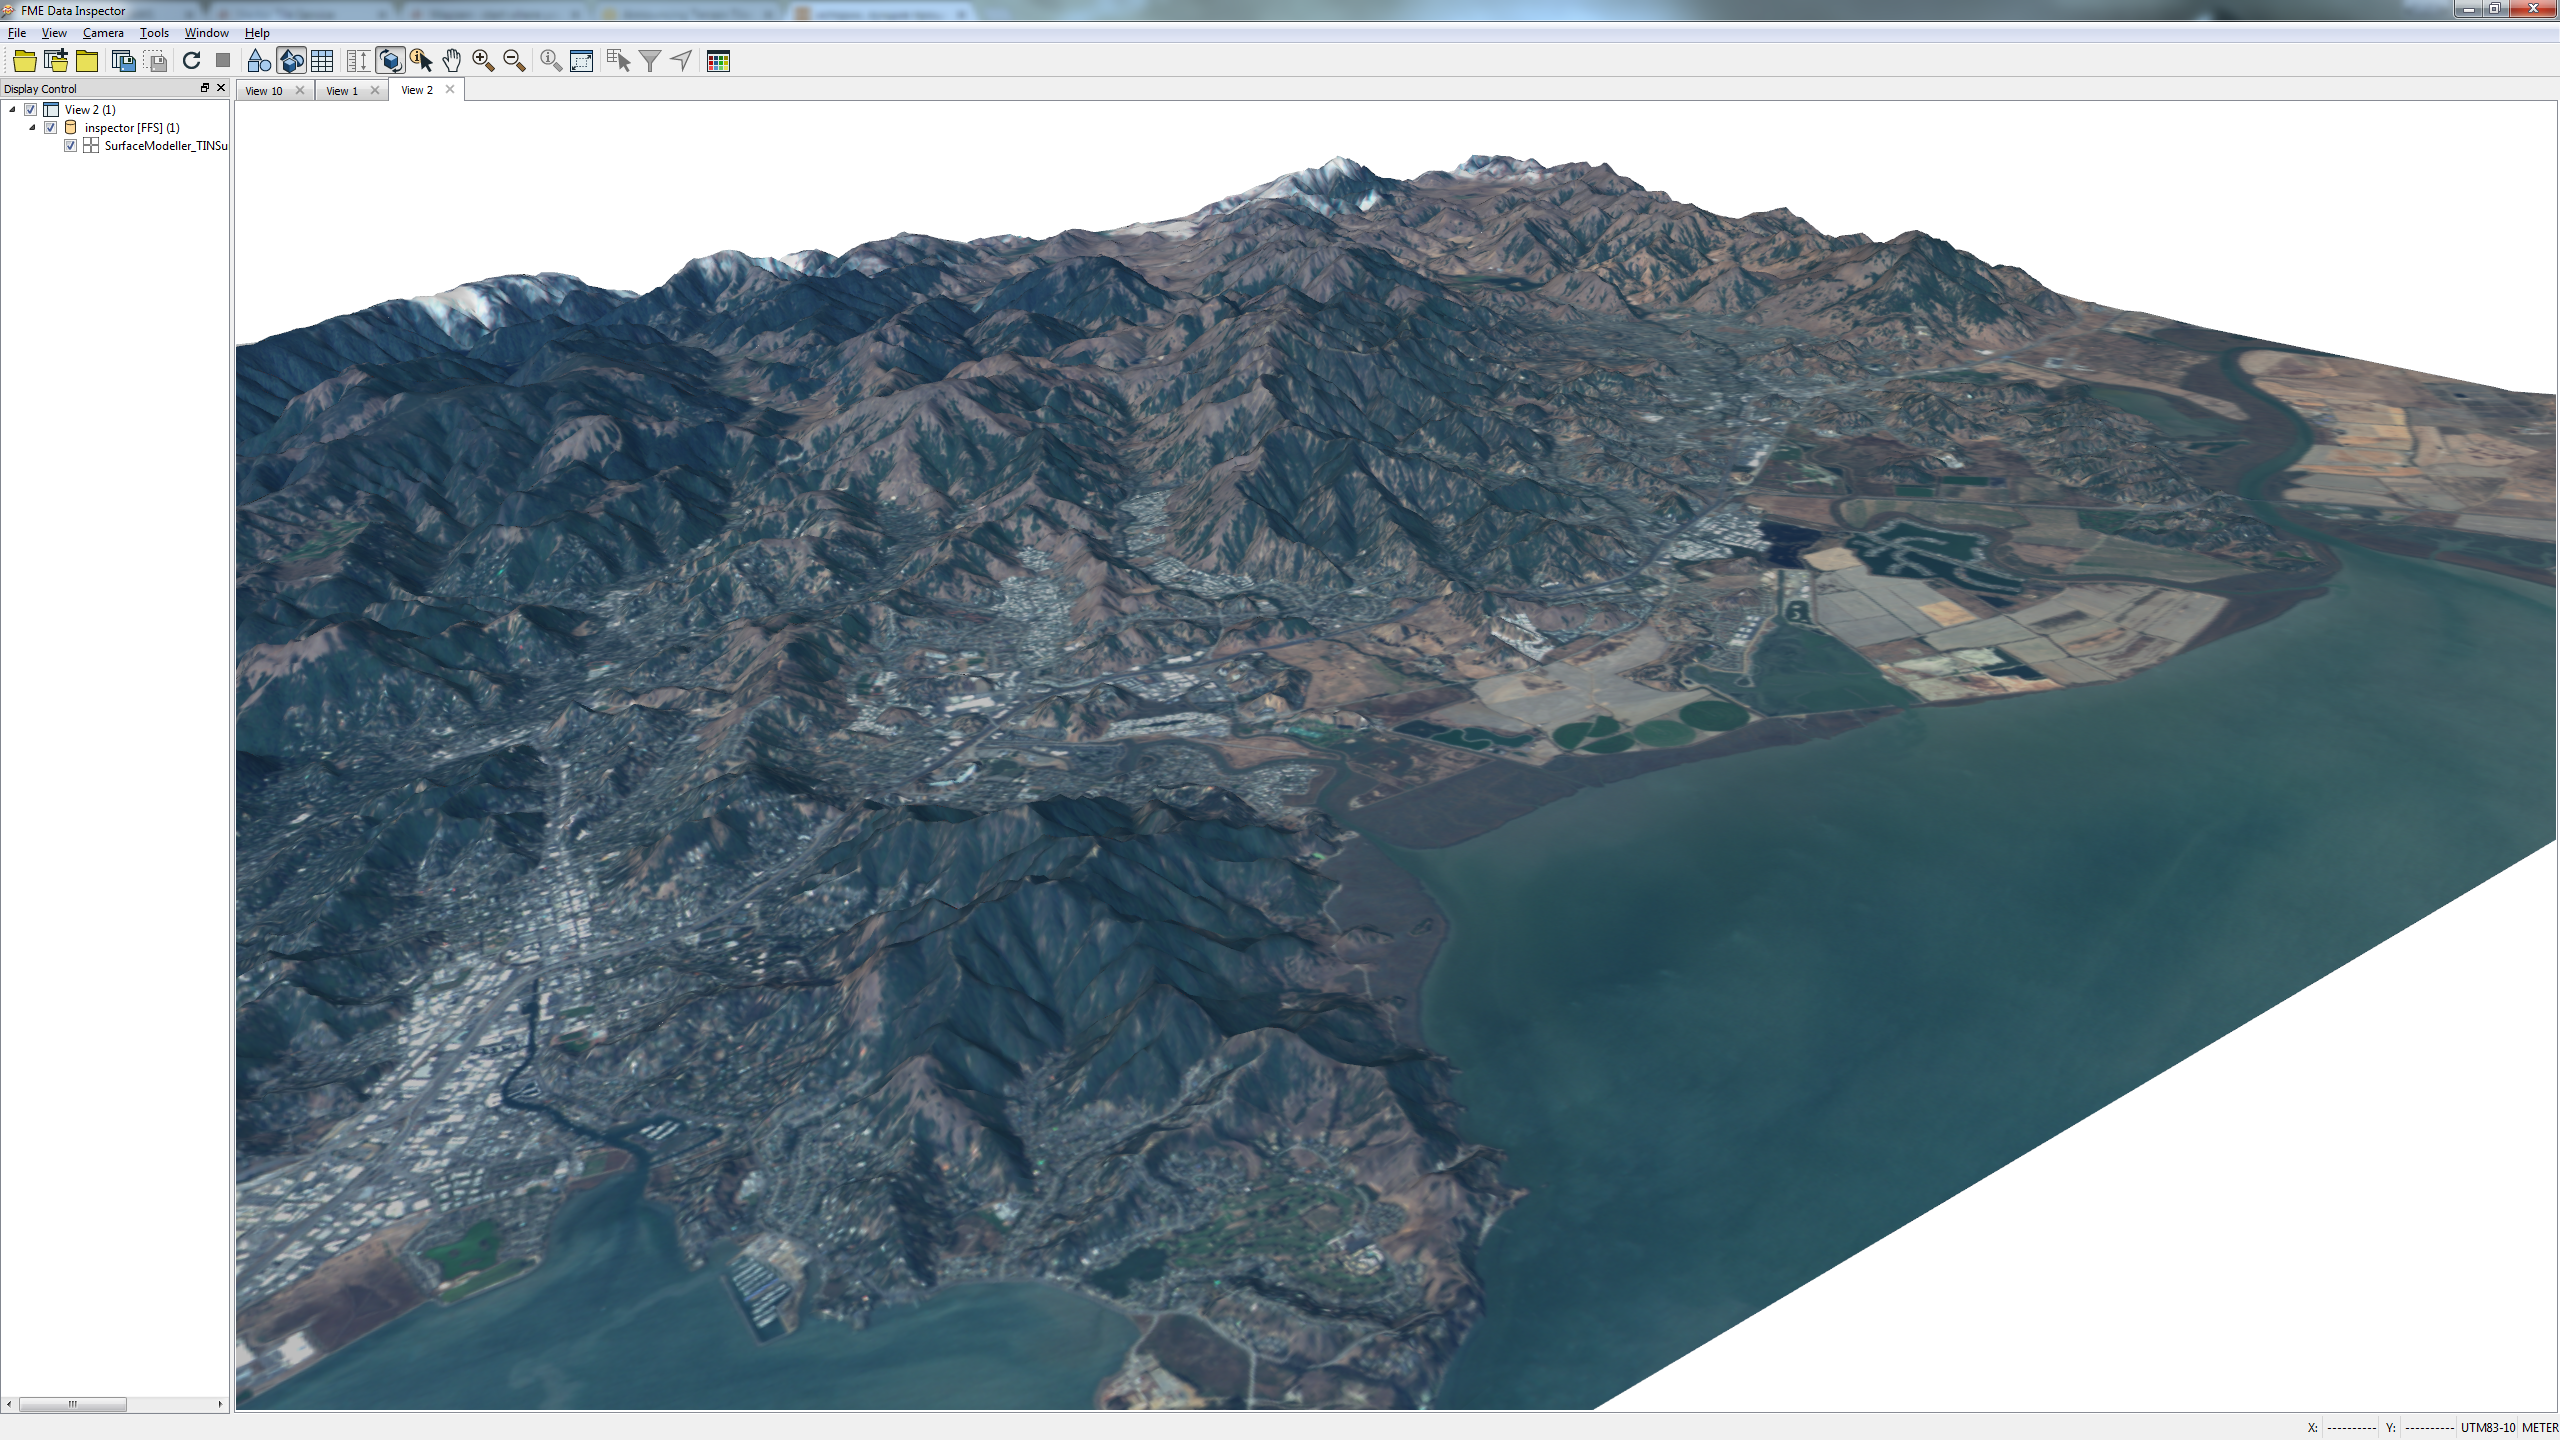 Raster image extruded to 3D, viewed in the FME Data Inspector.